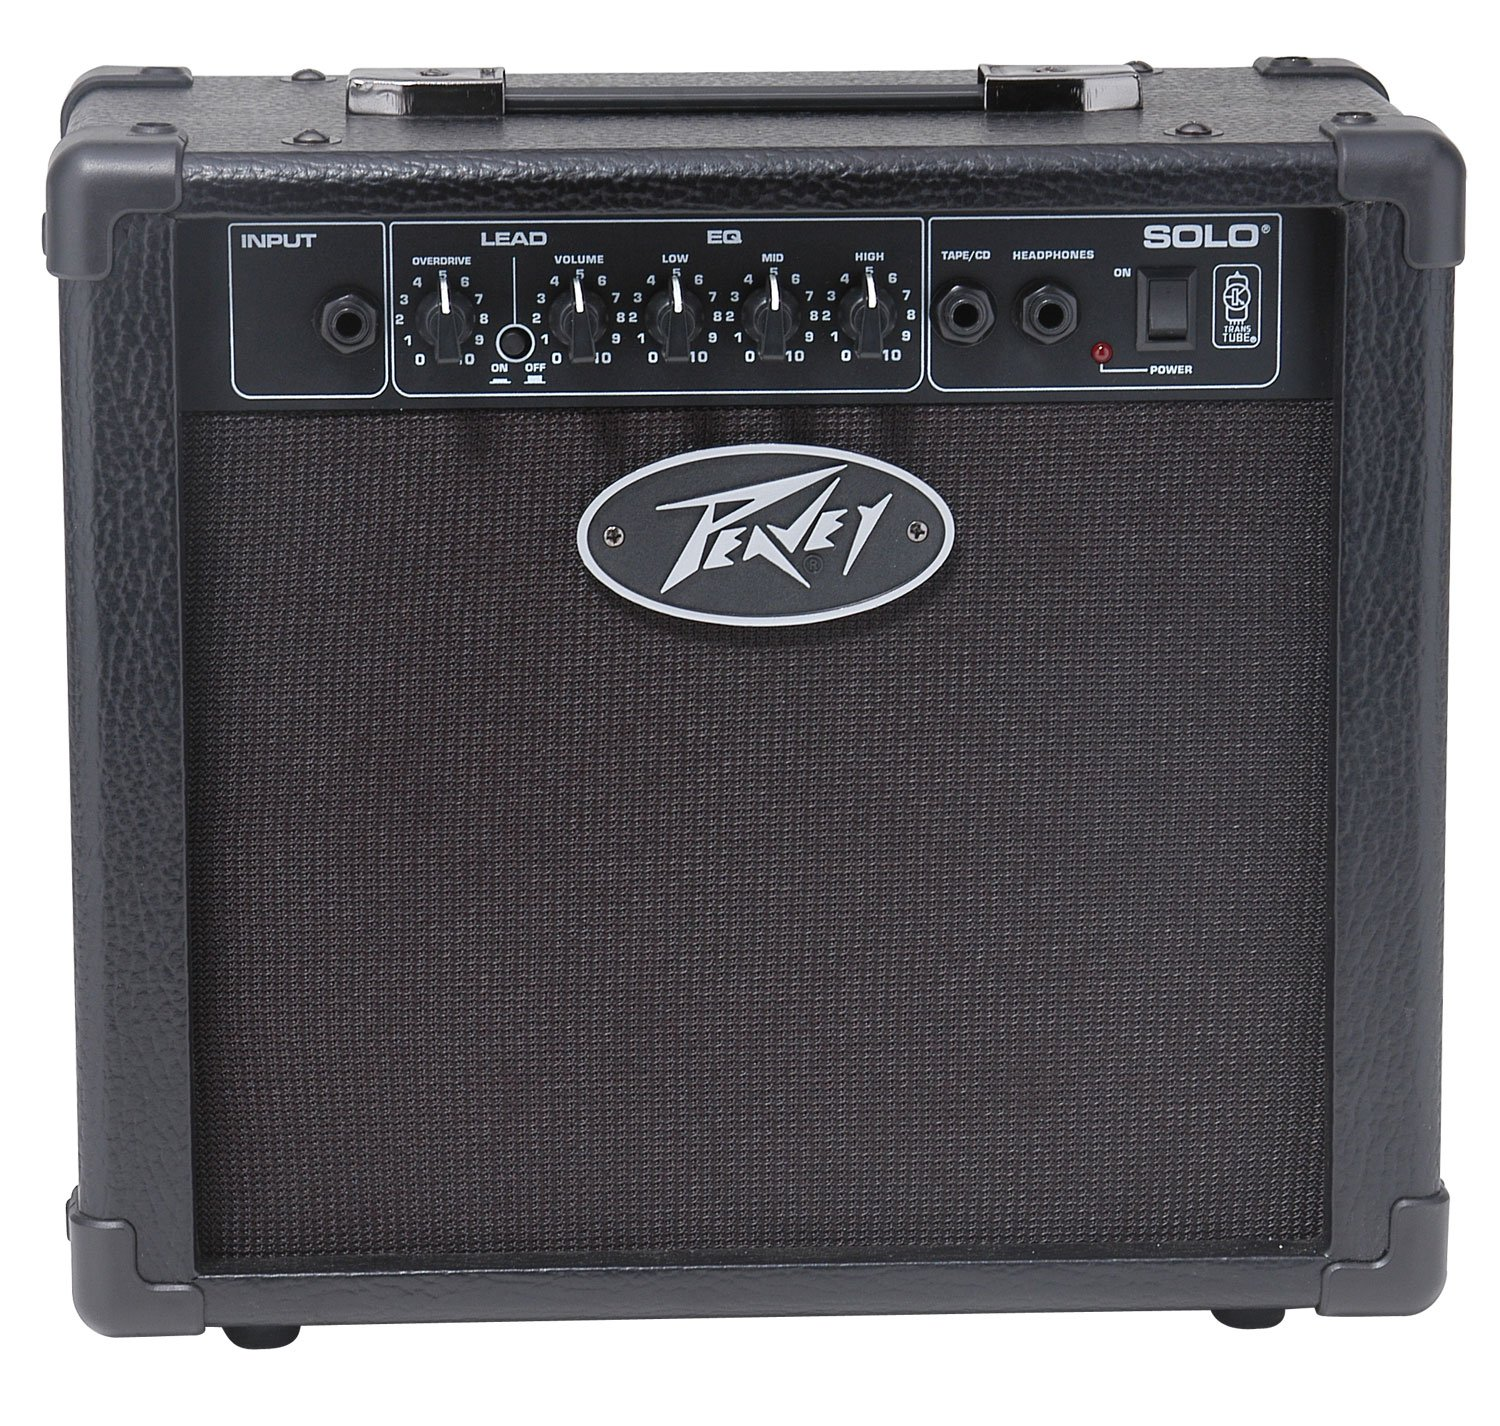 5. Peavey Solo 12W Transtube Electric Guitar Amplifier